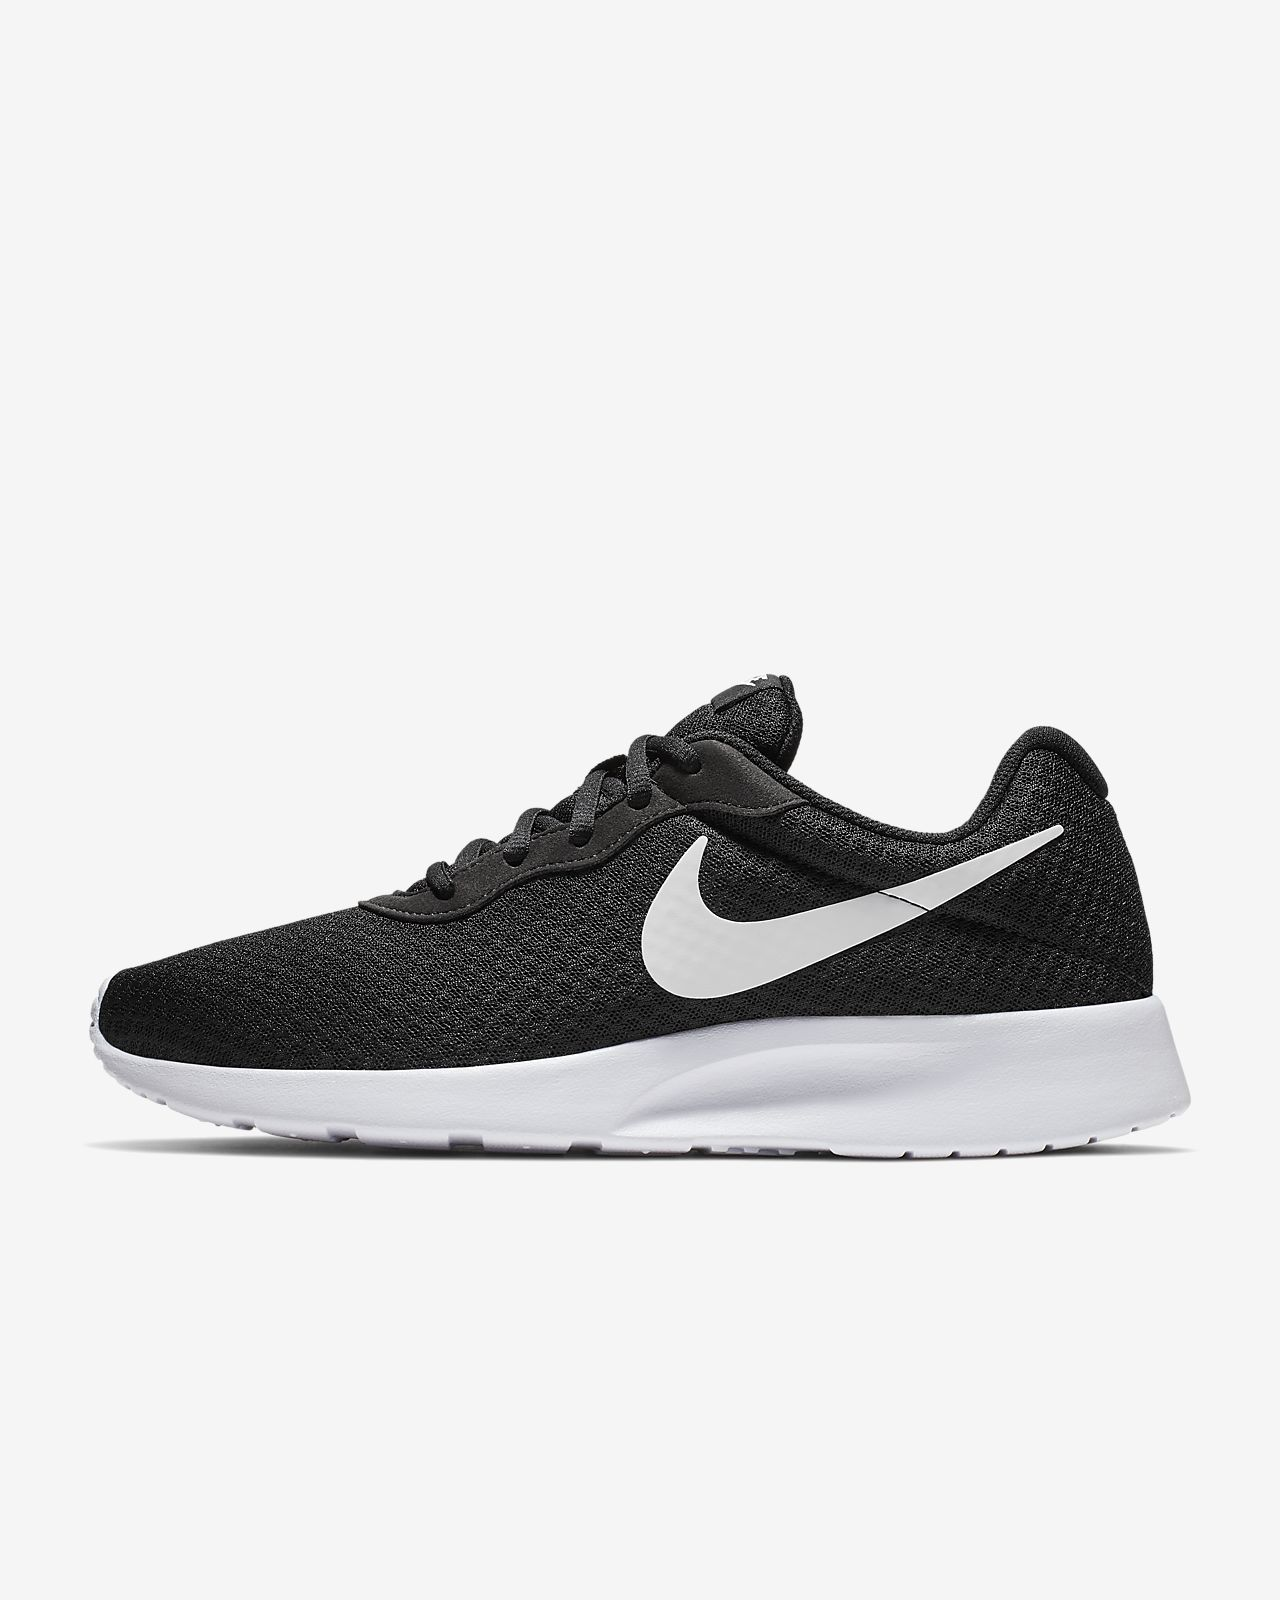 promo code 7063c 73967 Low Resolution Nike Tanjun Mens Shoe Nike Tanjun Mens Shoe